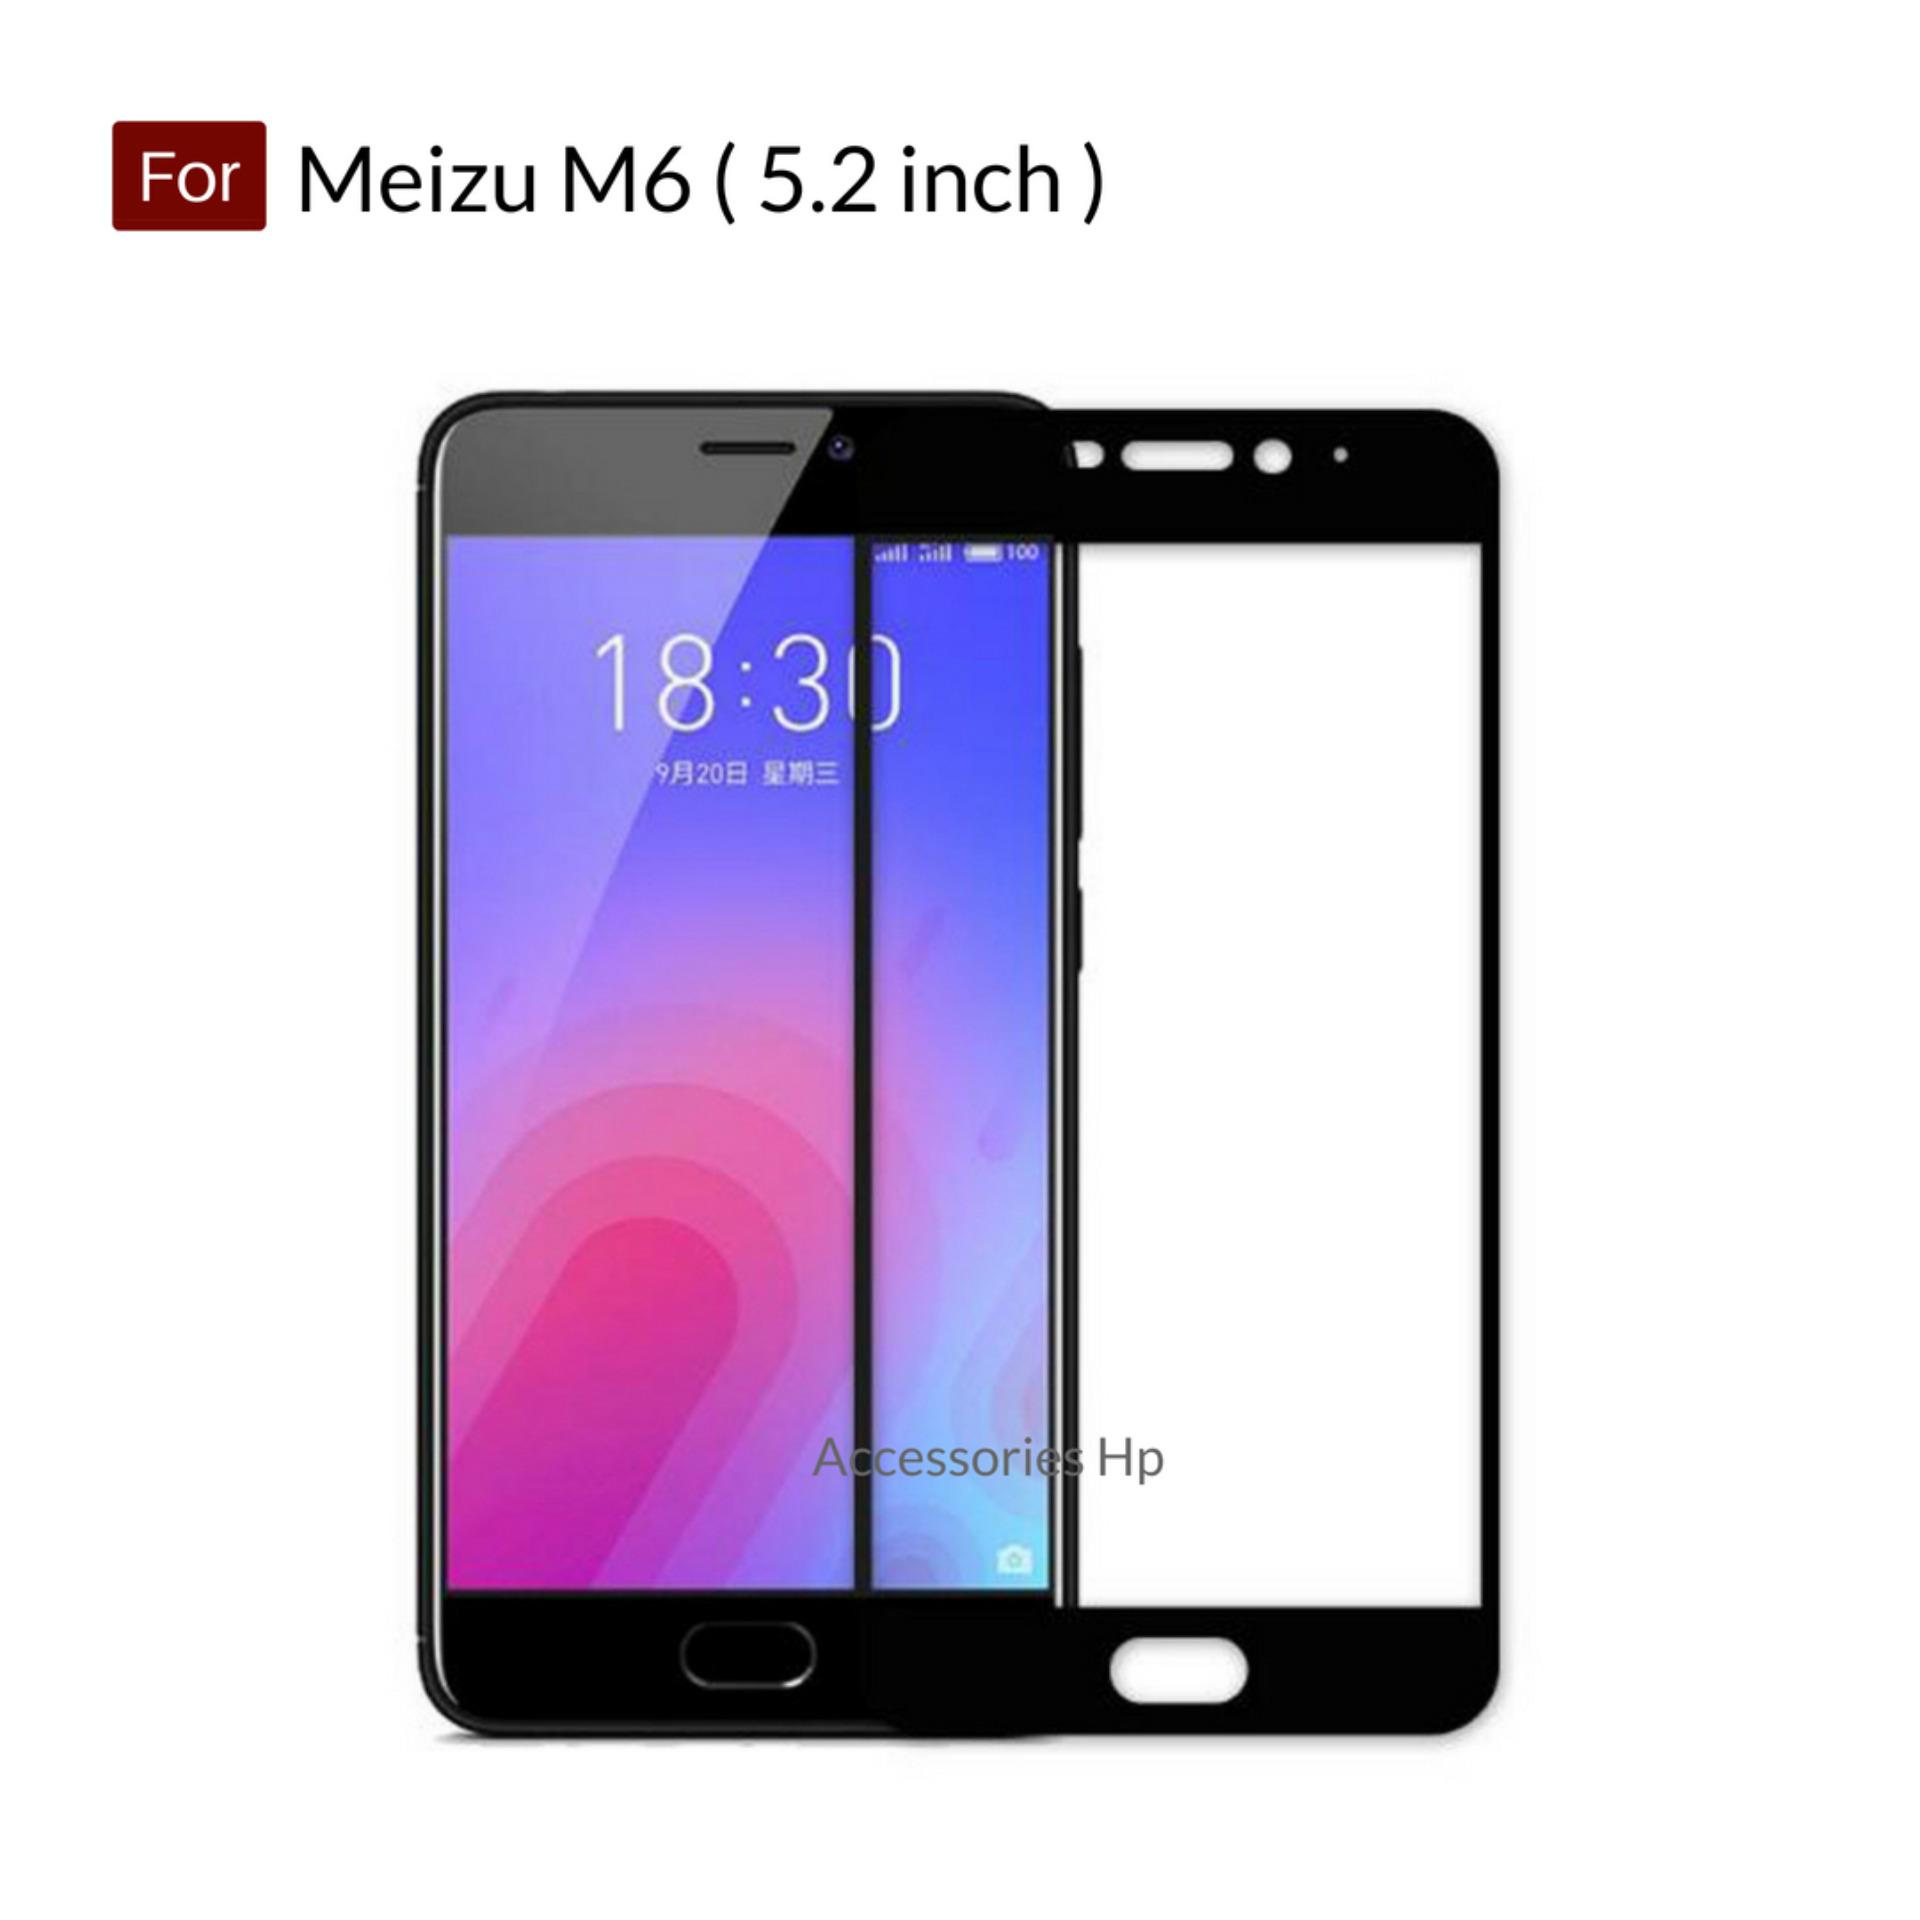 Rp 21.560. Accessories Hp Full Cover Tempered Glass Warna Screen Protector for Meizu M6 ( 5.2 inch ) - BlackIDR21560